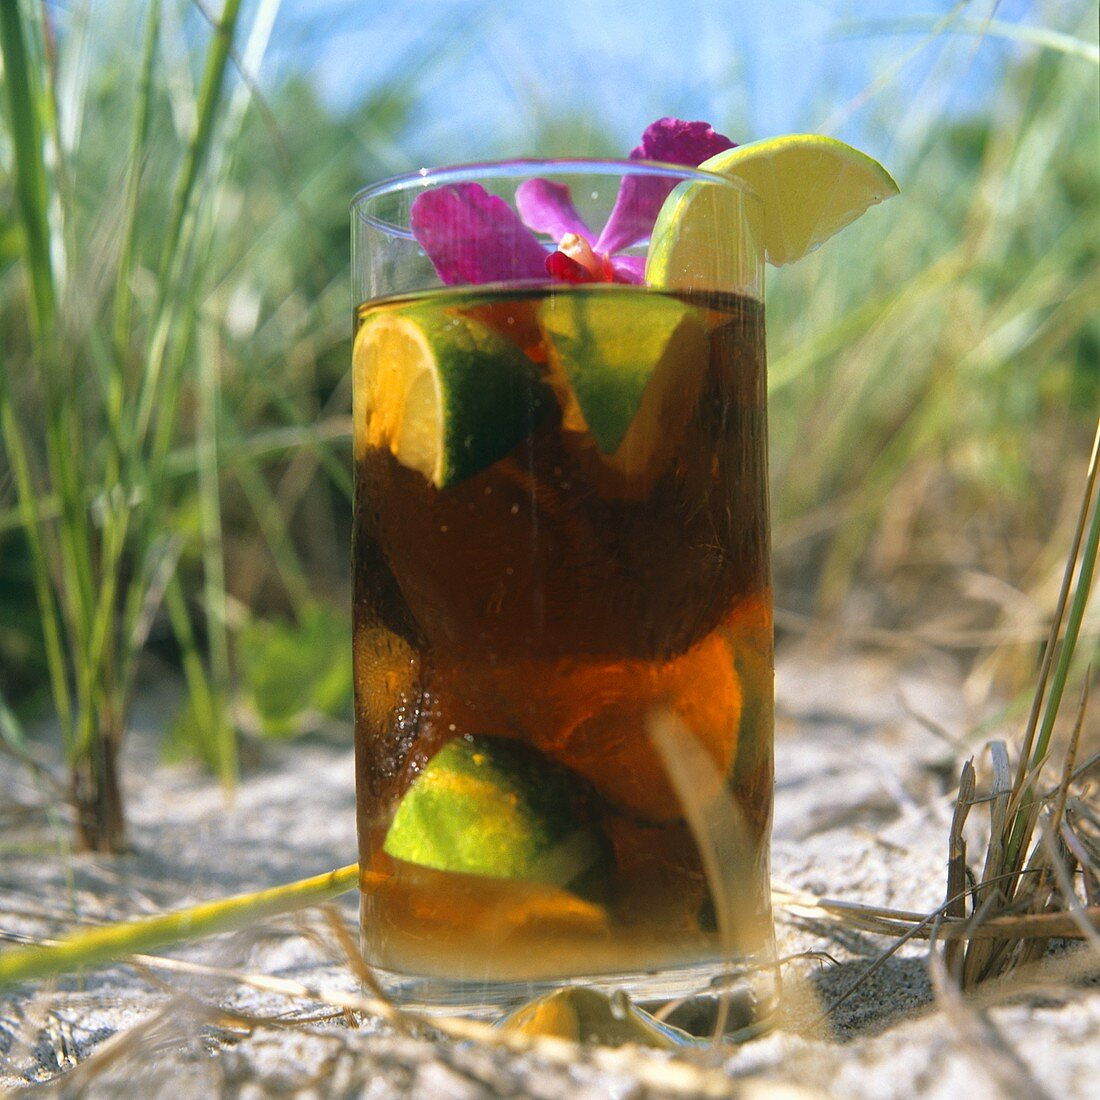 Cuba libre (rum drink with cola) in sand